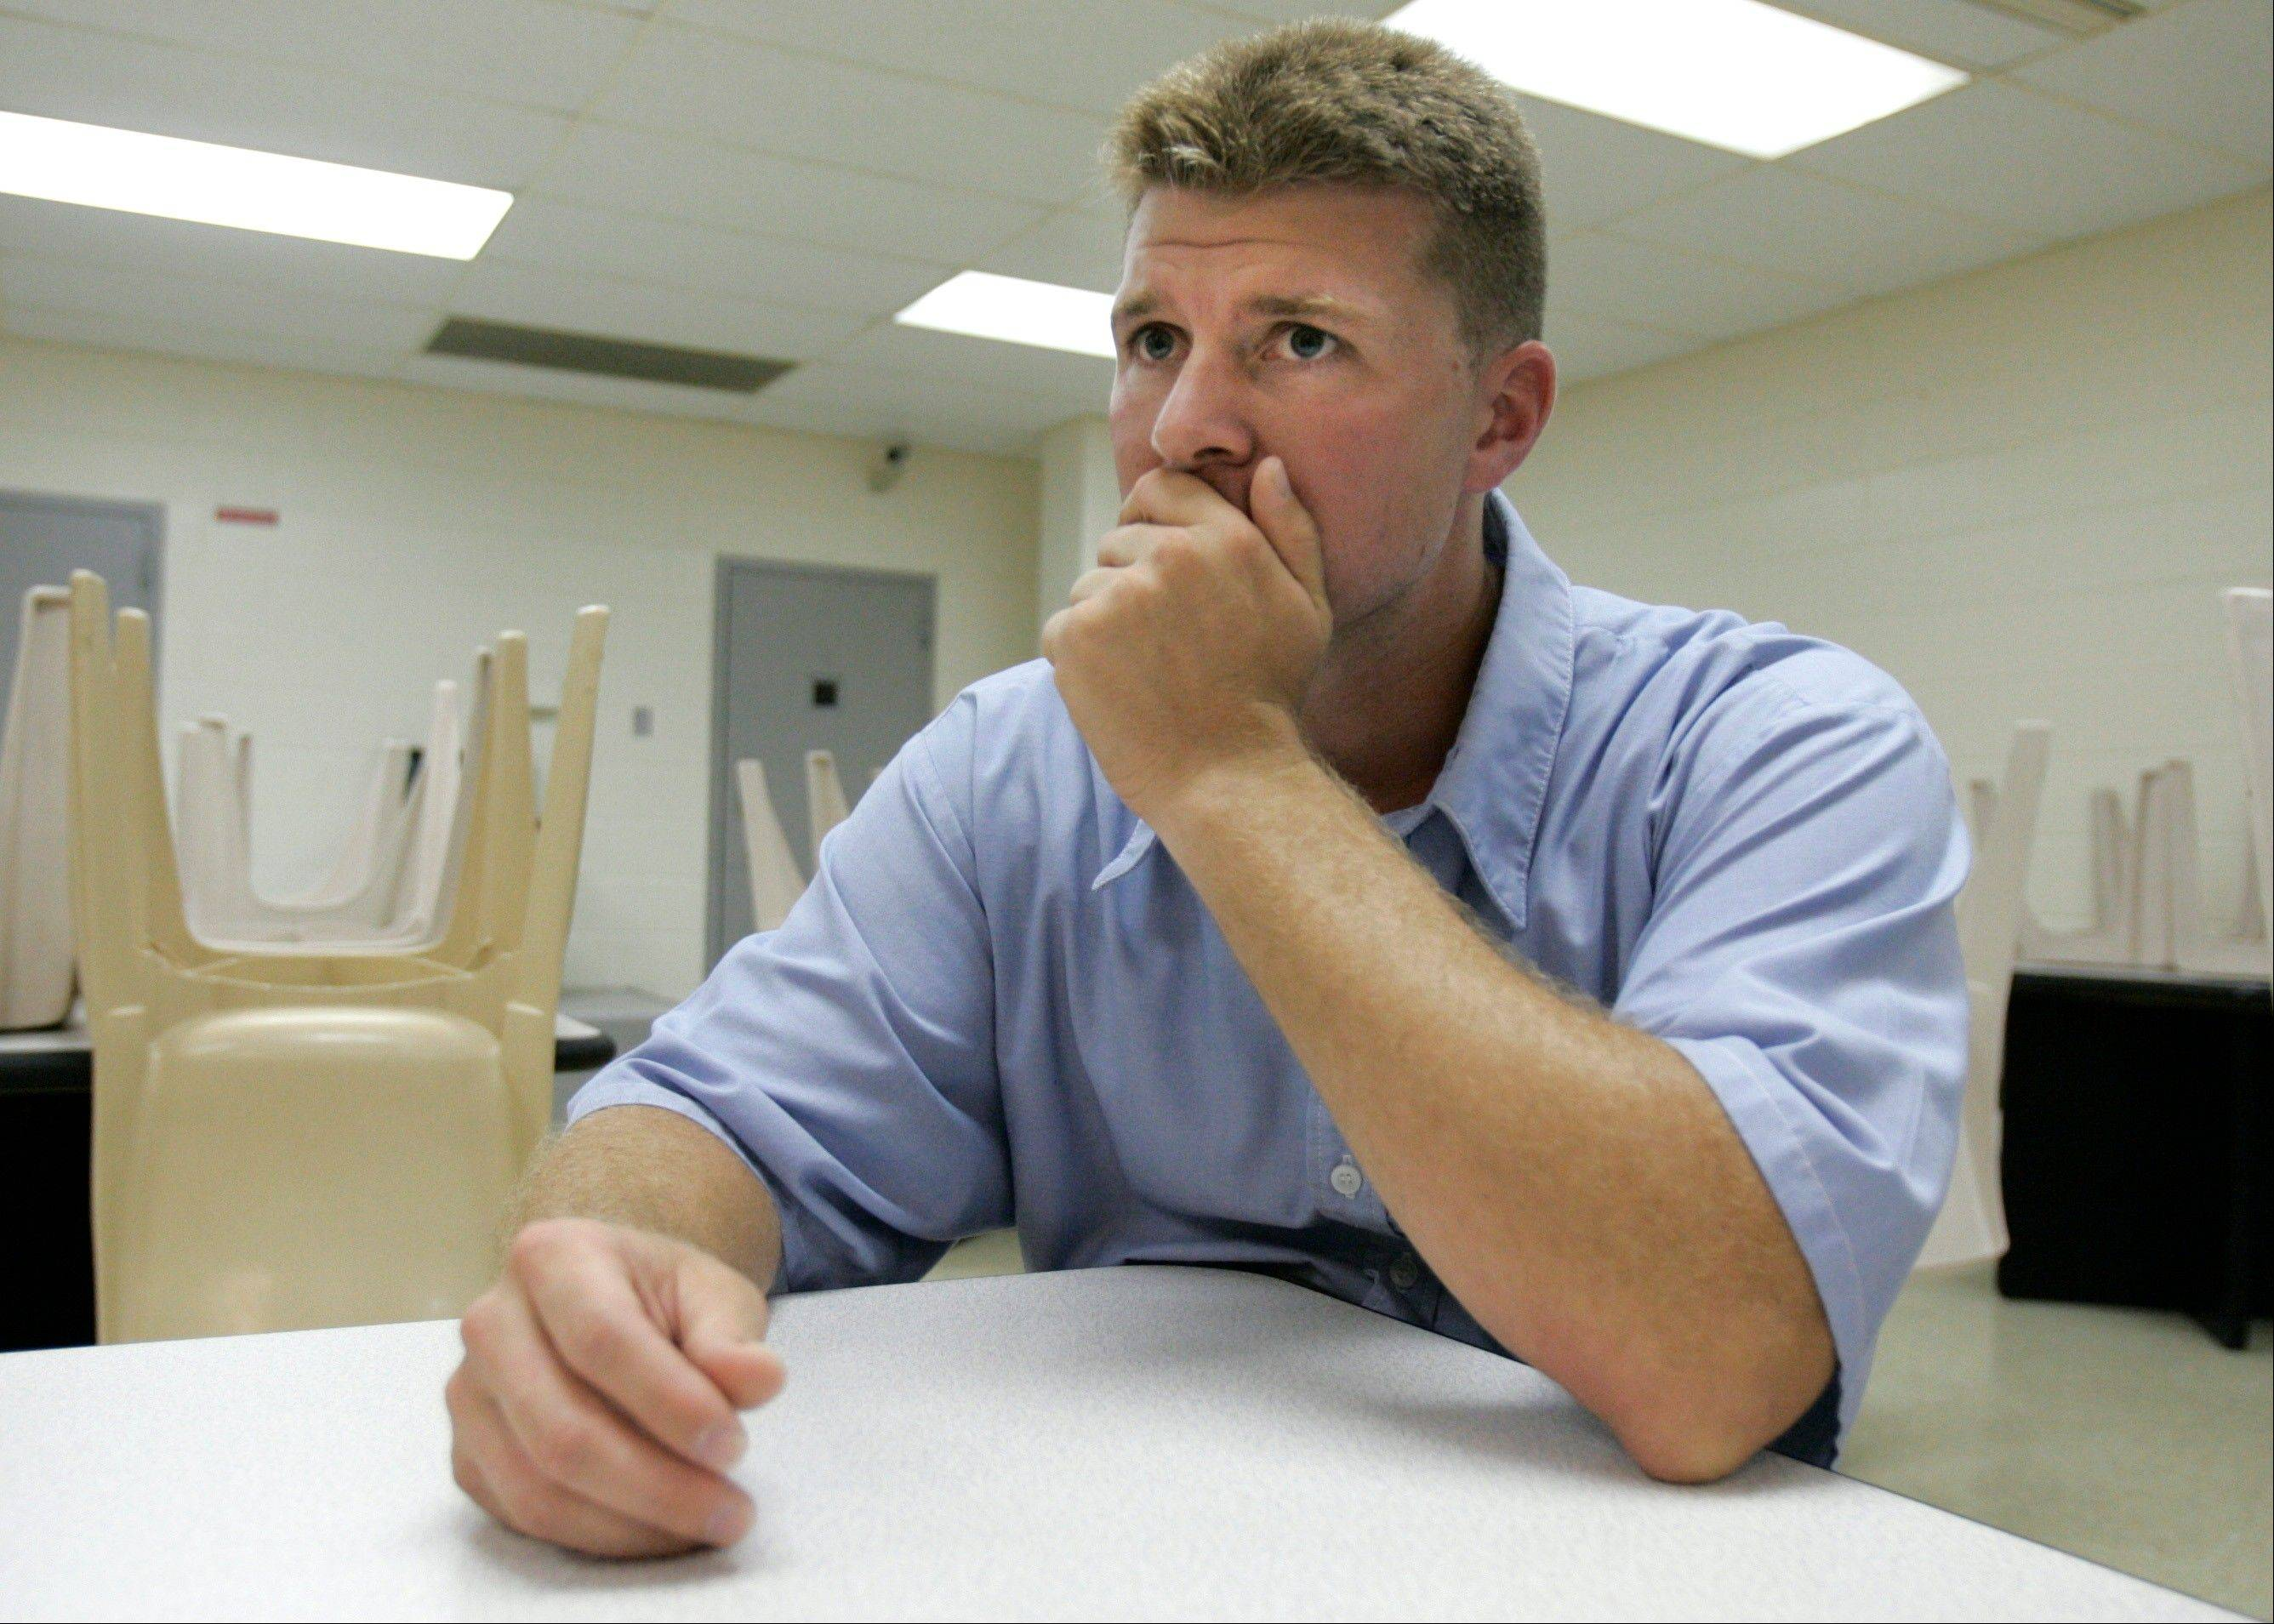 Associated Press/July 8, 2008Former Navy SEAL trainee Dustin Turner listens to a question during an interview at the Powhatan Correctional Facility in Powhatan, Va.